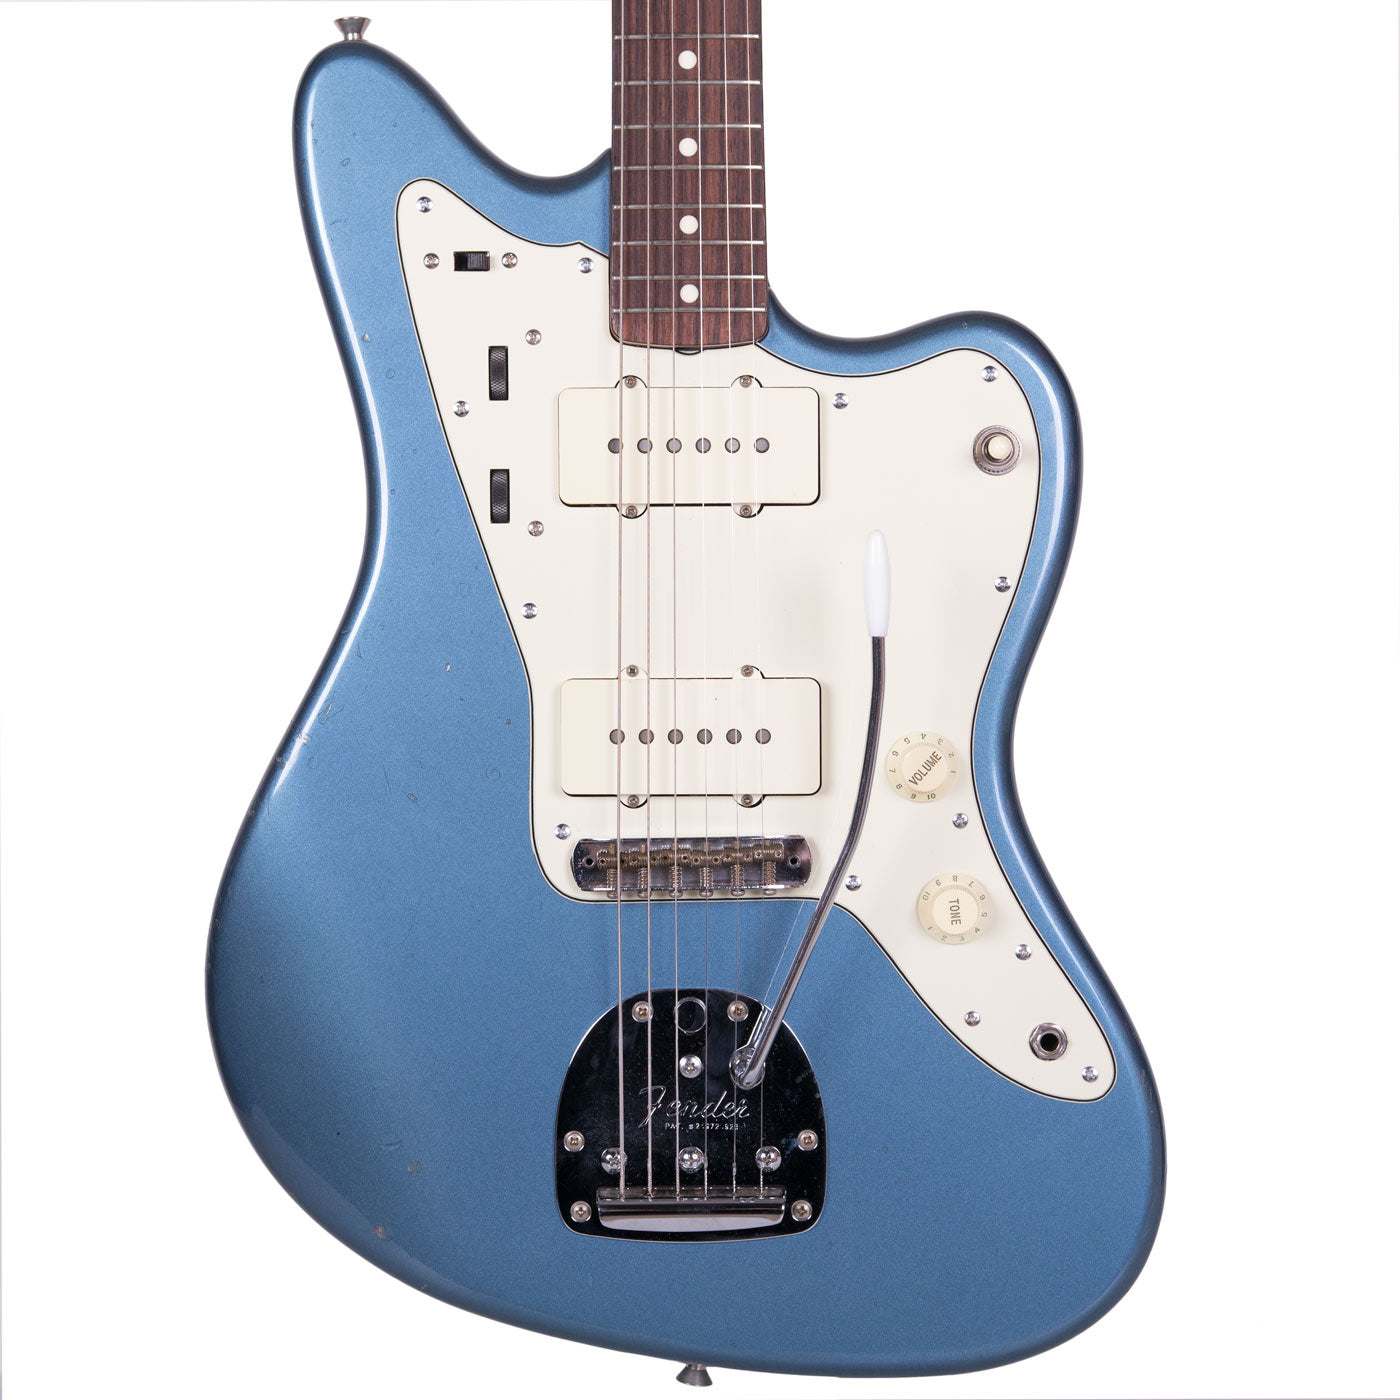 2006/'08 Fender Japan Jazzmaster JM66, CIJ, Old Lake Placid Blue